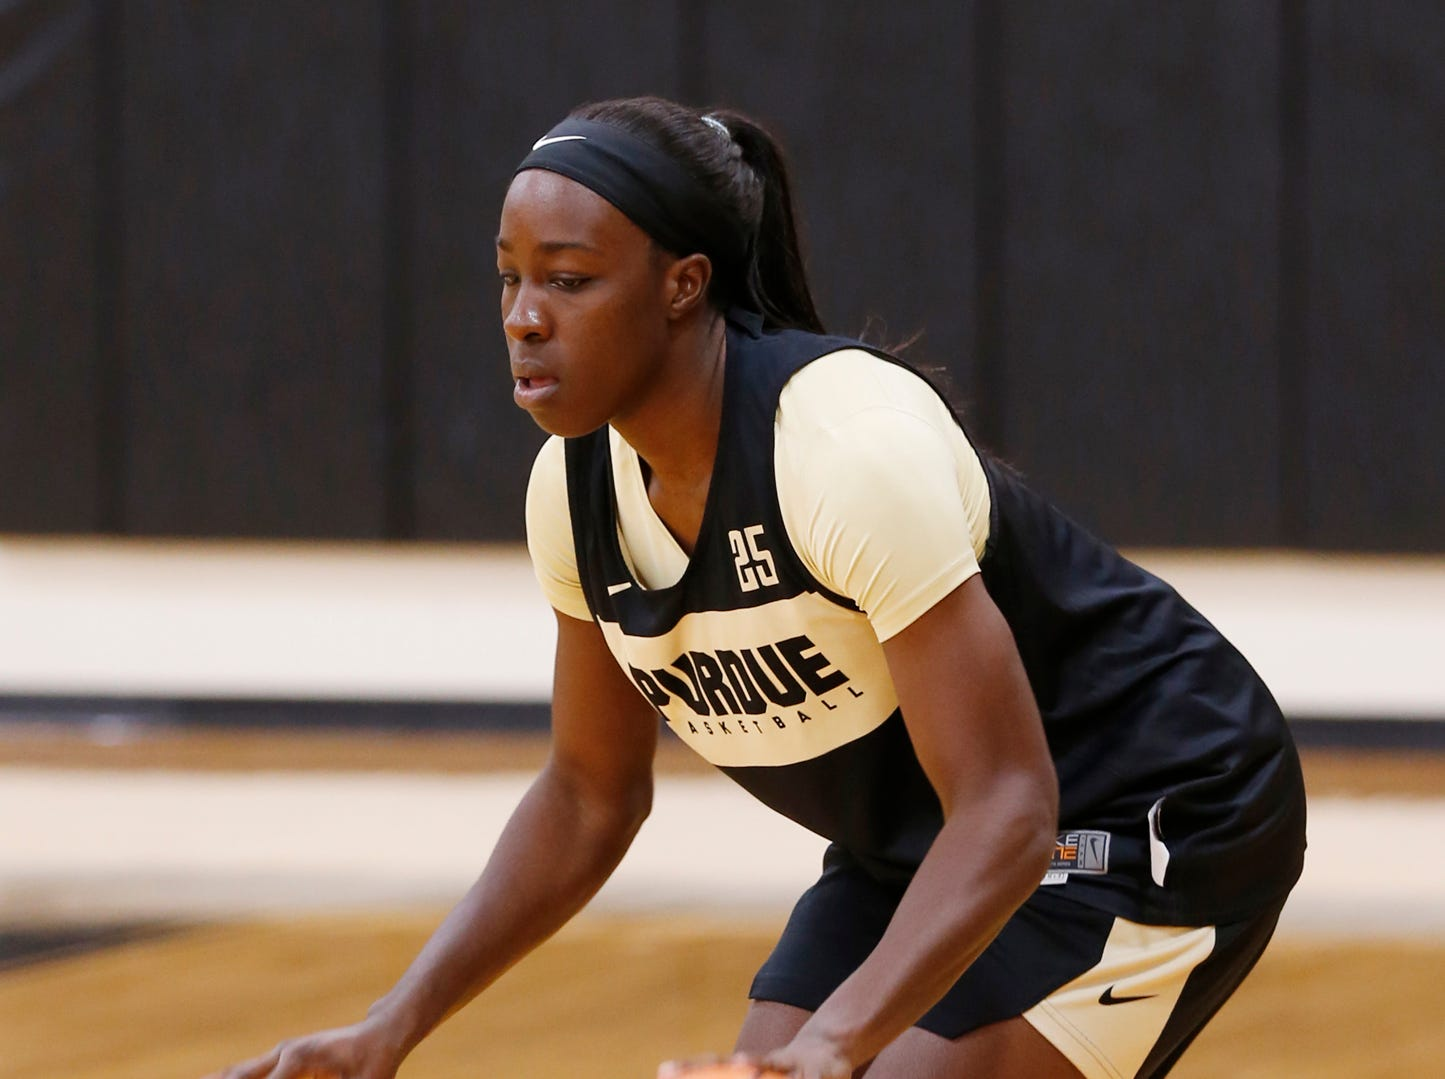 Tamara Farquhar in a dribbling drill during Purdue women's basketball Wednesday, September 26, 2018, at Cardinal Court in Mackey Arena.